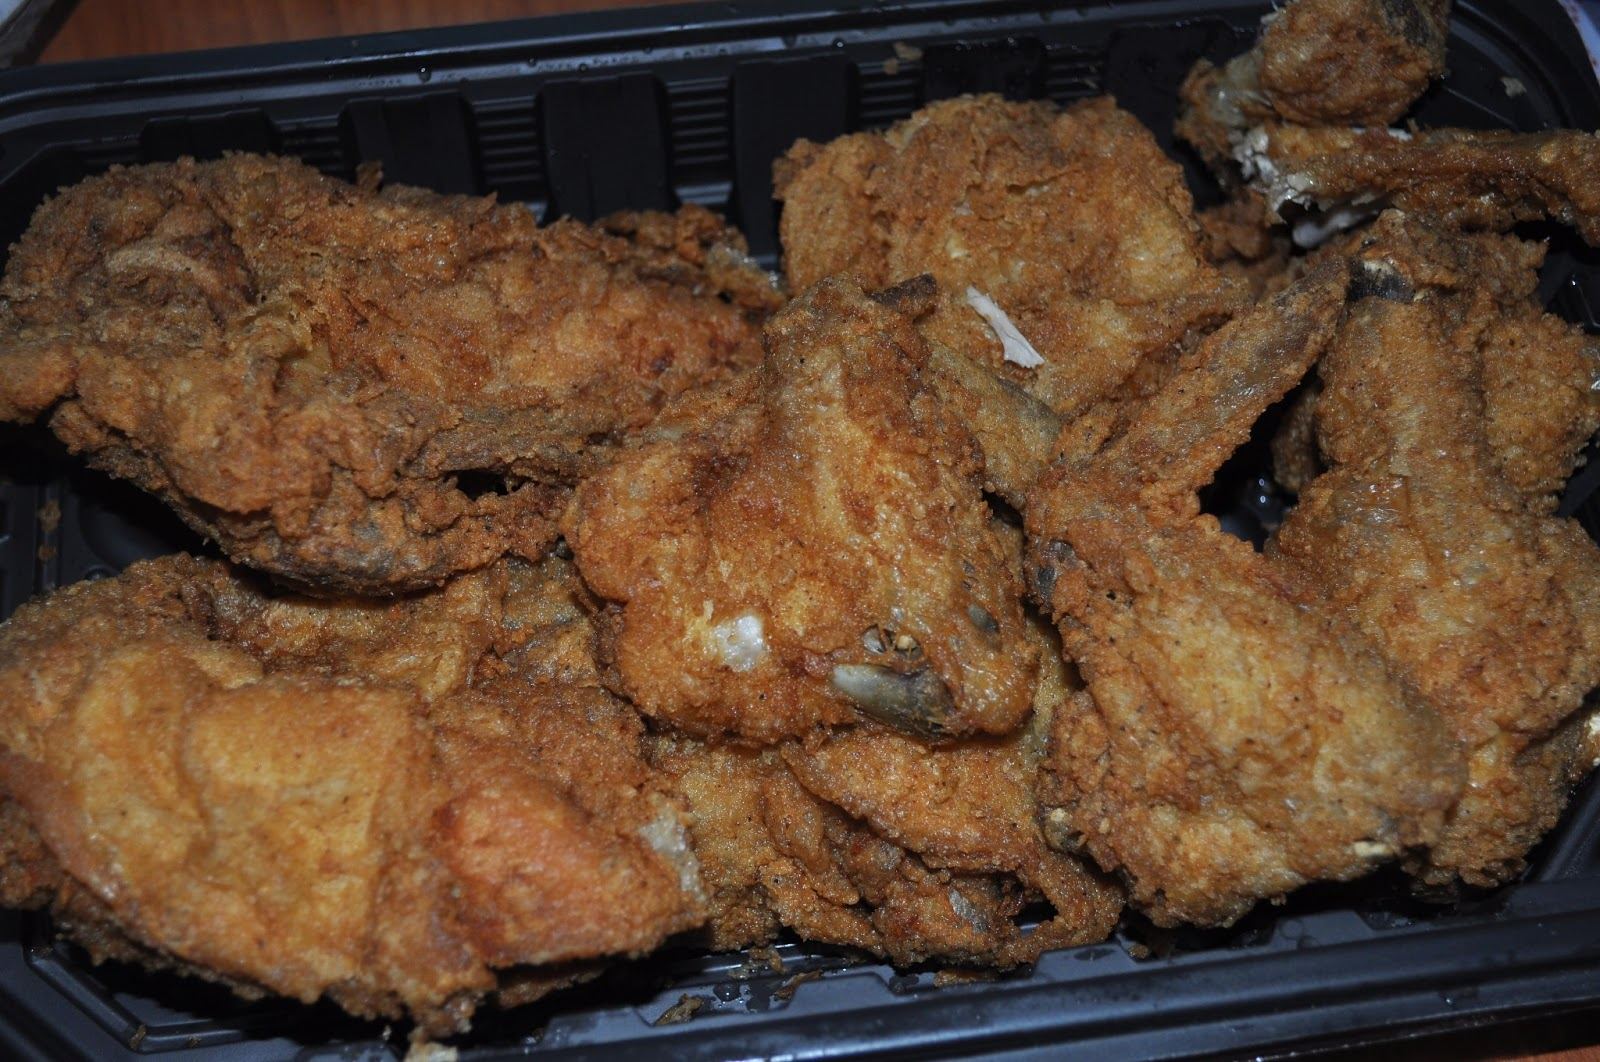 Life In My Kitchen And Beyond Product Review Fried Chicken At Kroger L lisaham feb 23, 2018. product review fried chicken at kroger